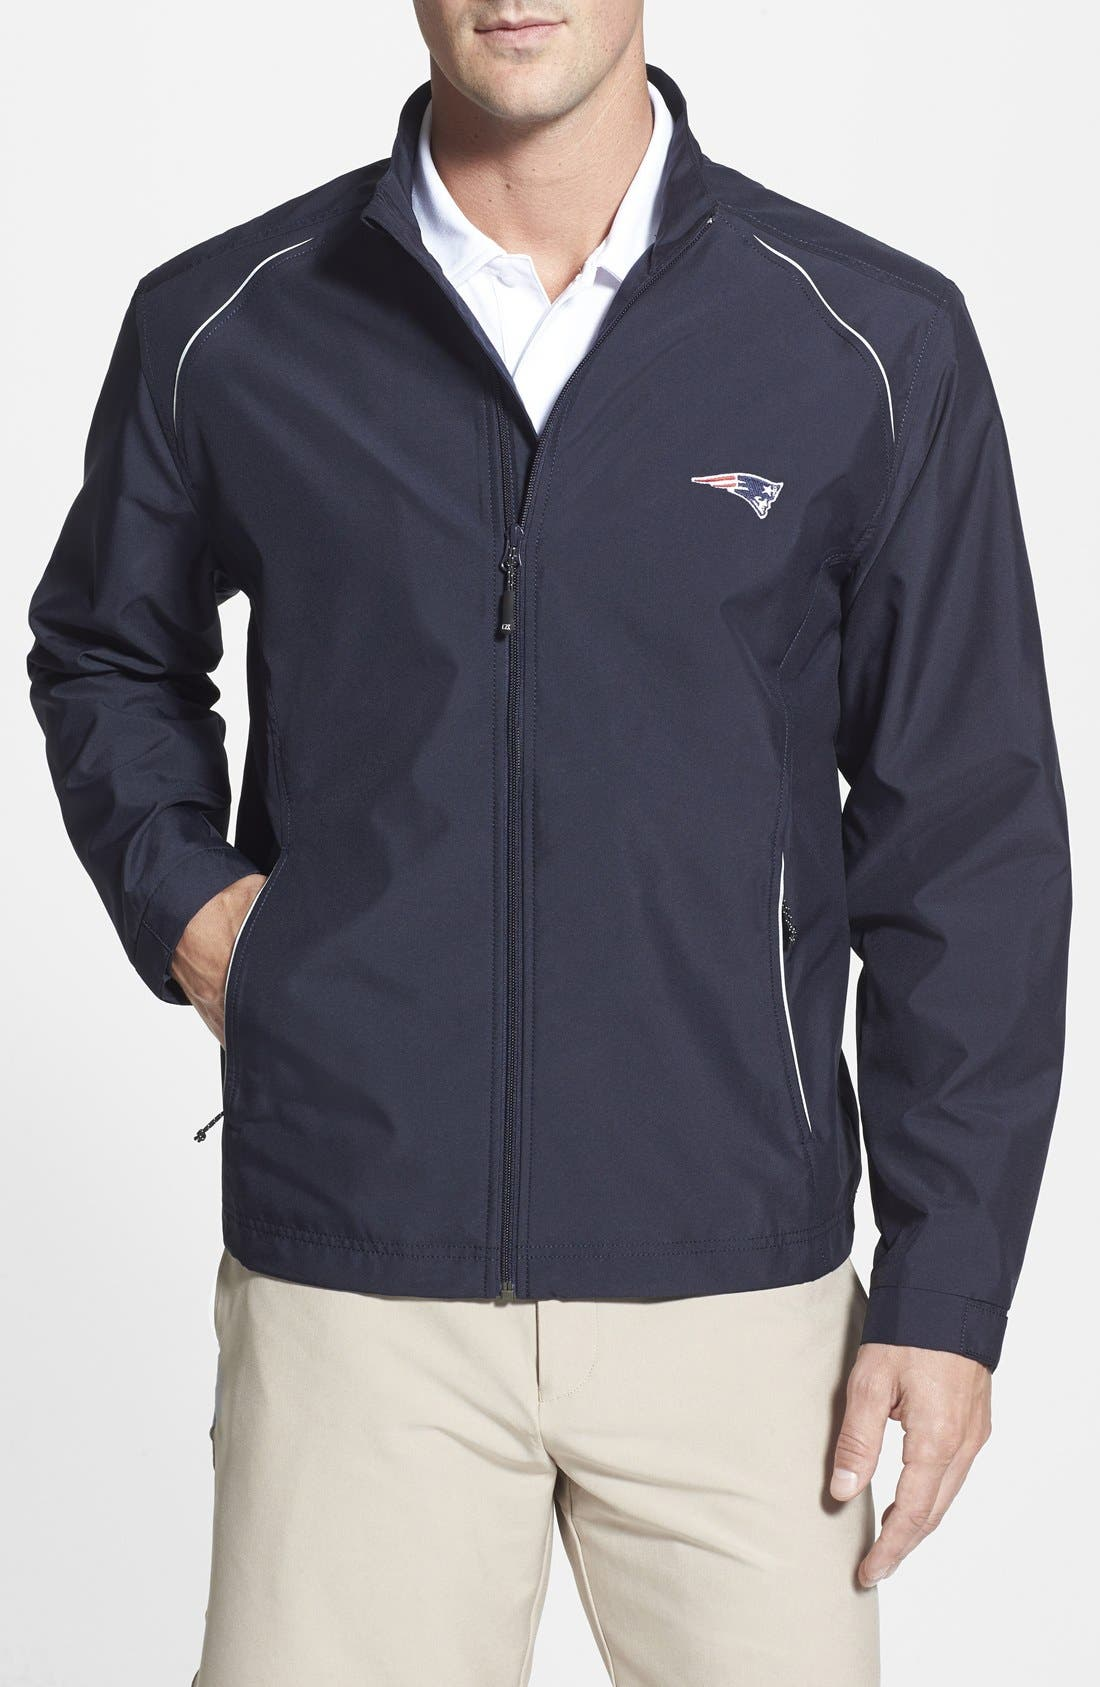 New England Patriots - Beacon WeatherTec Wind & Water Resistant Jacket,                             Main thumbnail 1, color,                             Navy Blue